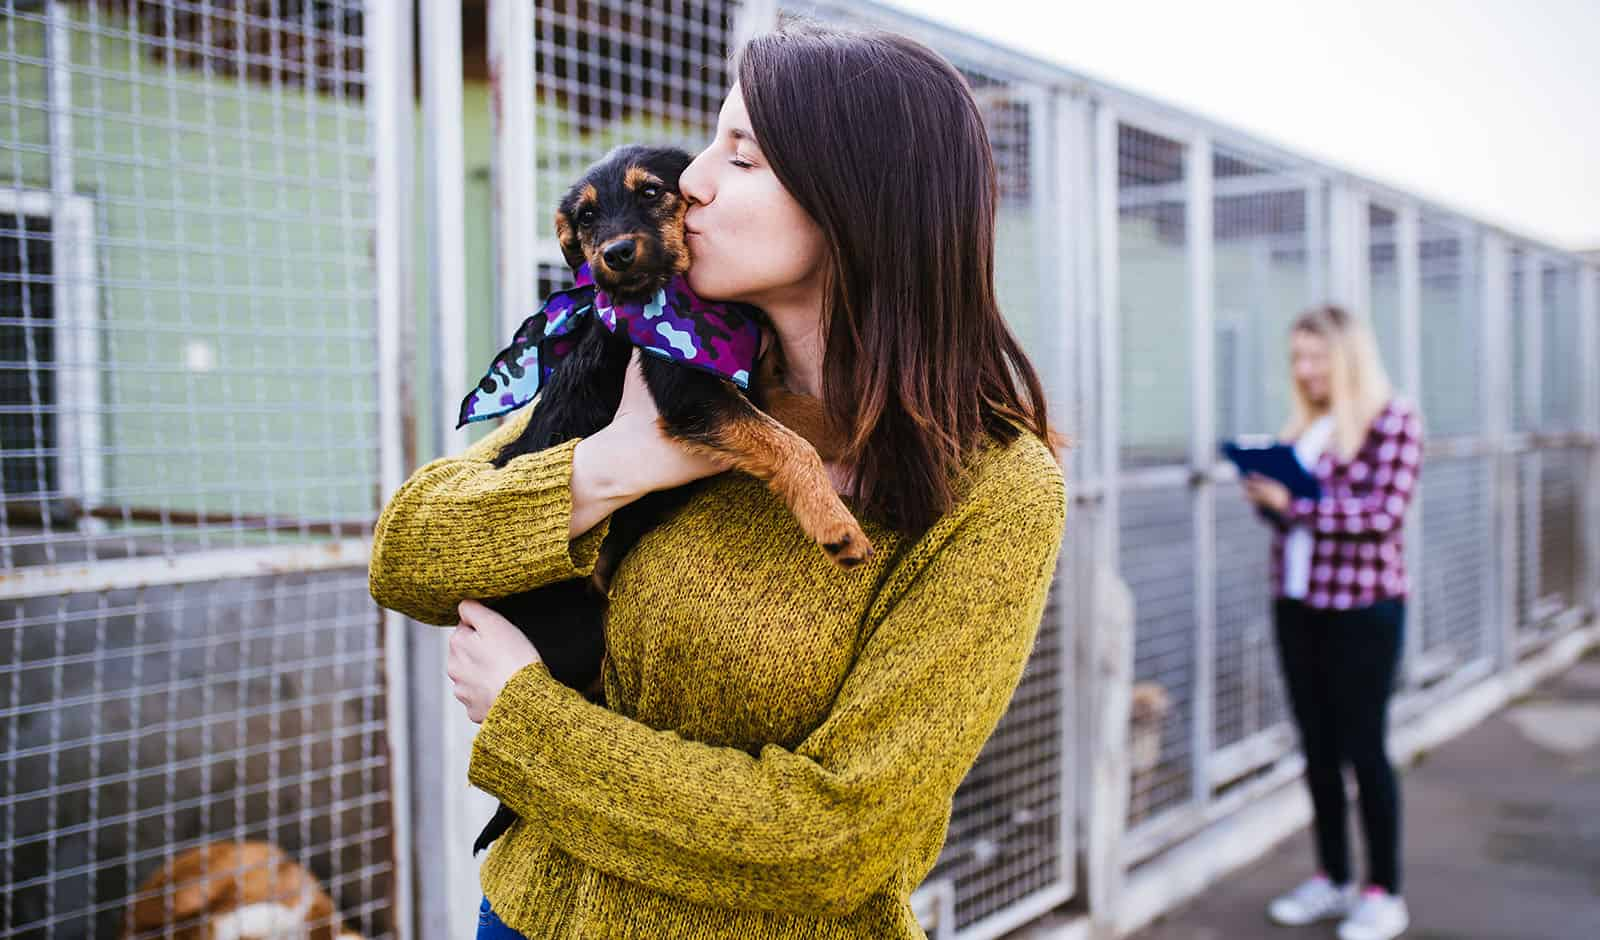 Young woman with worker choosing which dog to adopt from a shelt